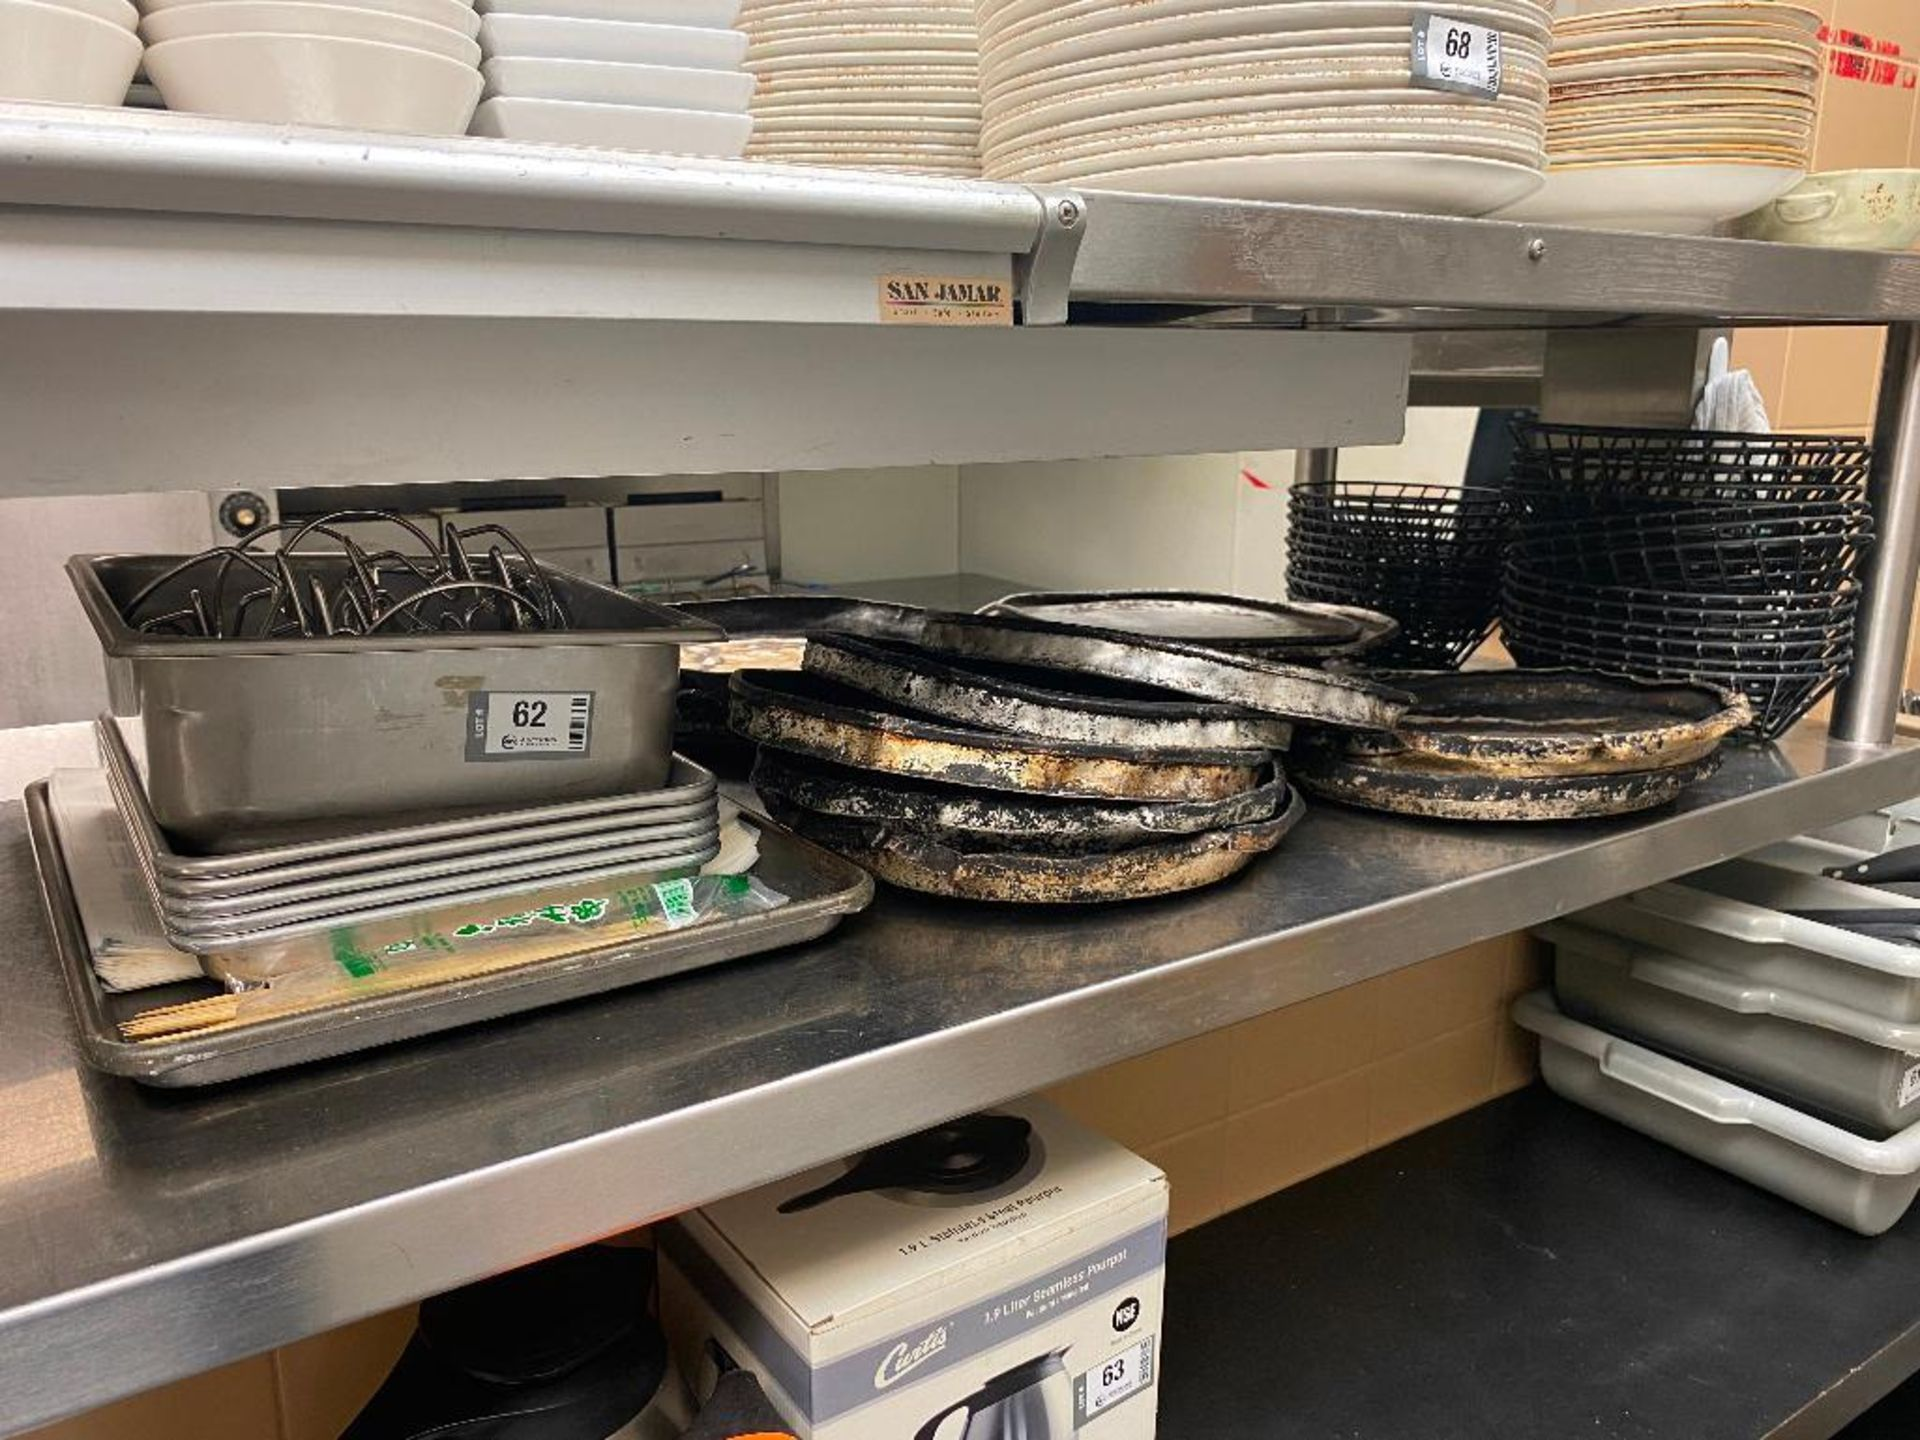 LOT OF ASSORTED PIZZA PANS, WIRE SERVING BASKETS & TACO SERVERS